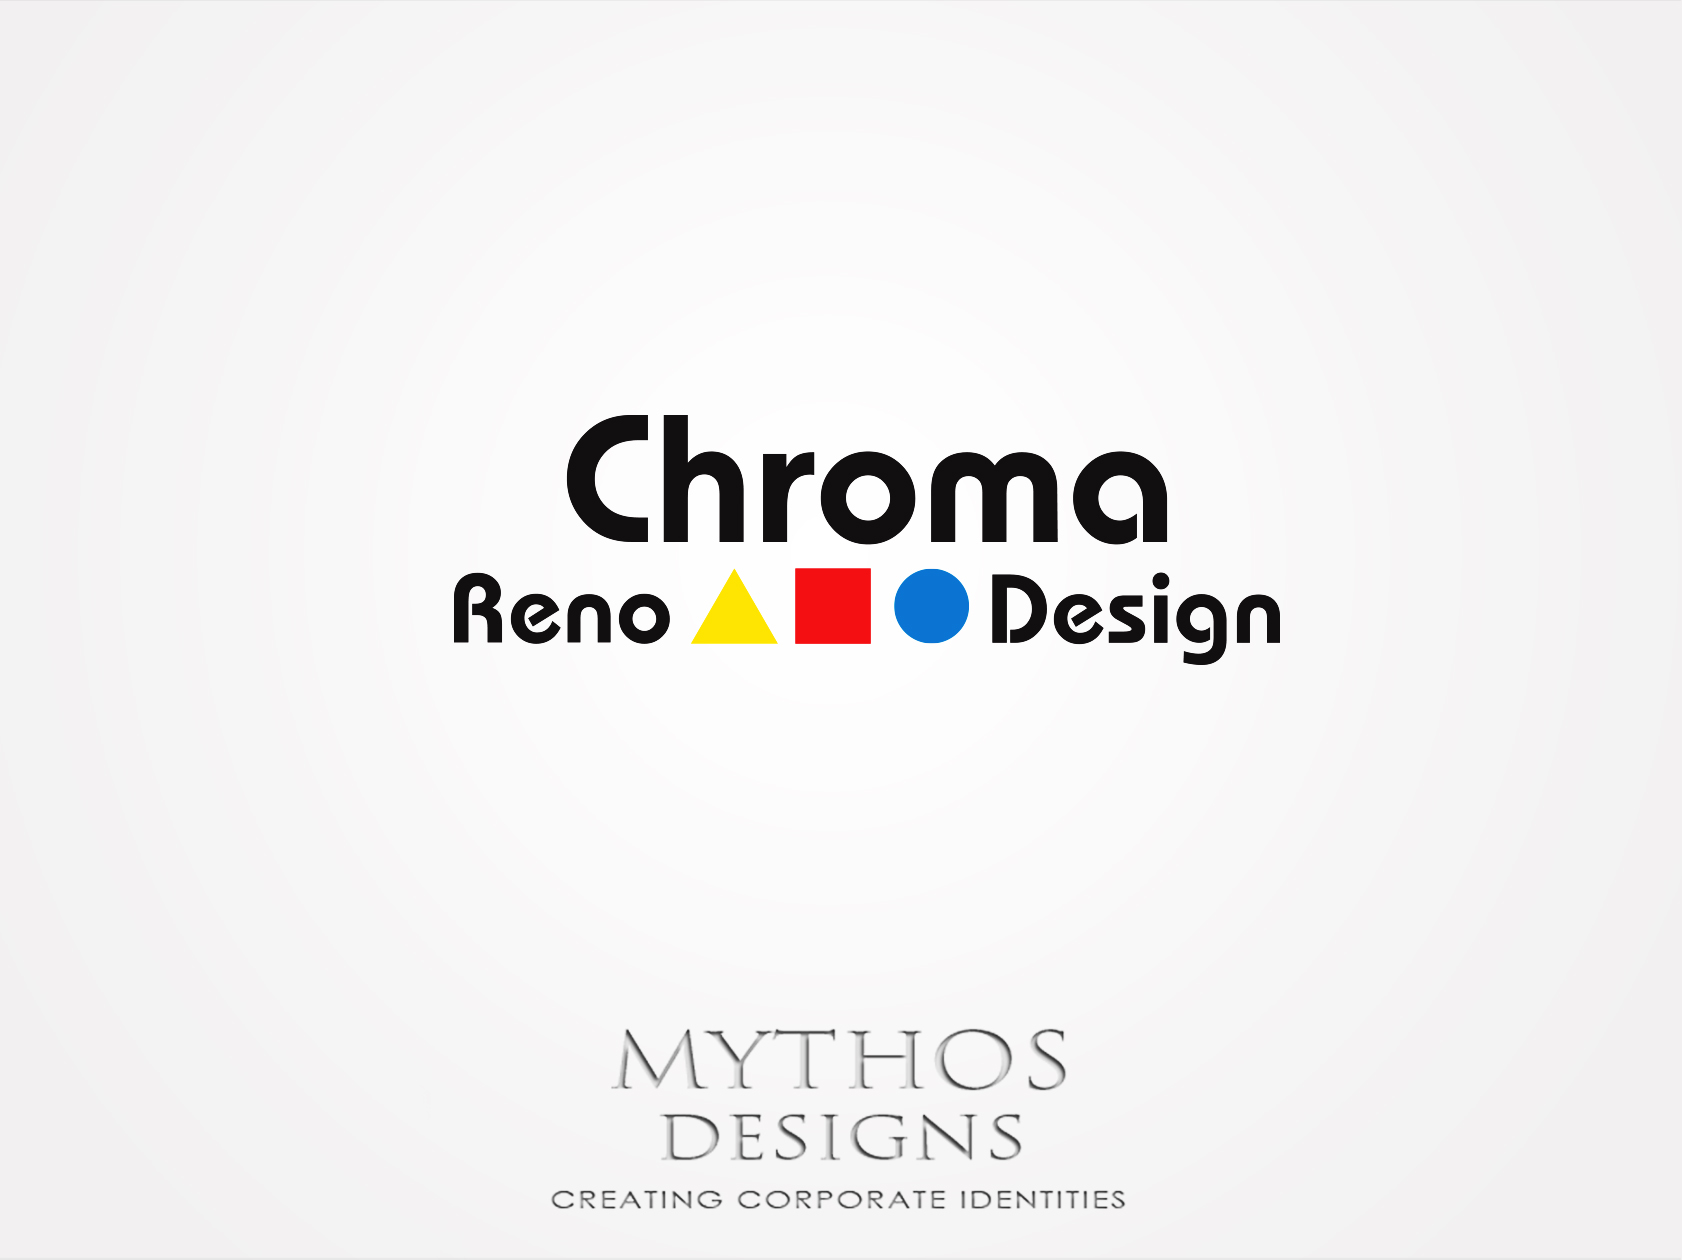 Logo Design by Mythos Designs - Entry No. 288 in the Logo Design Contest Inspiring Logo Design for Chroma Reno+Design.